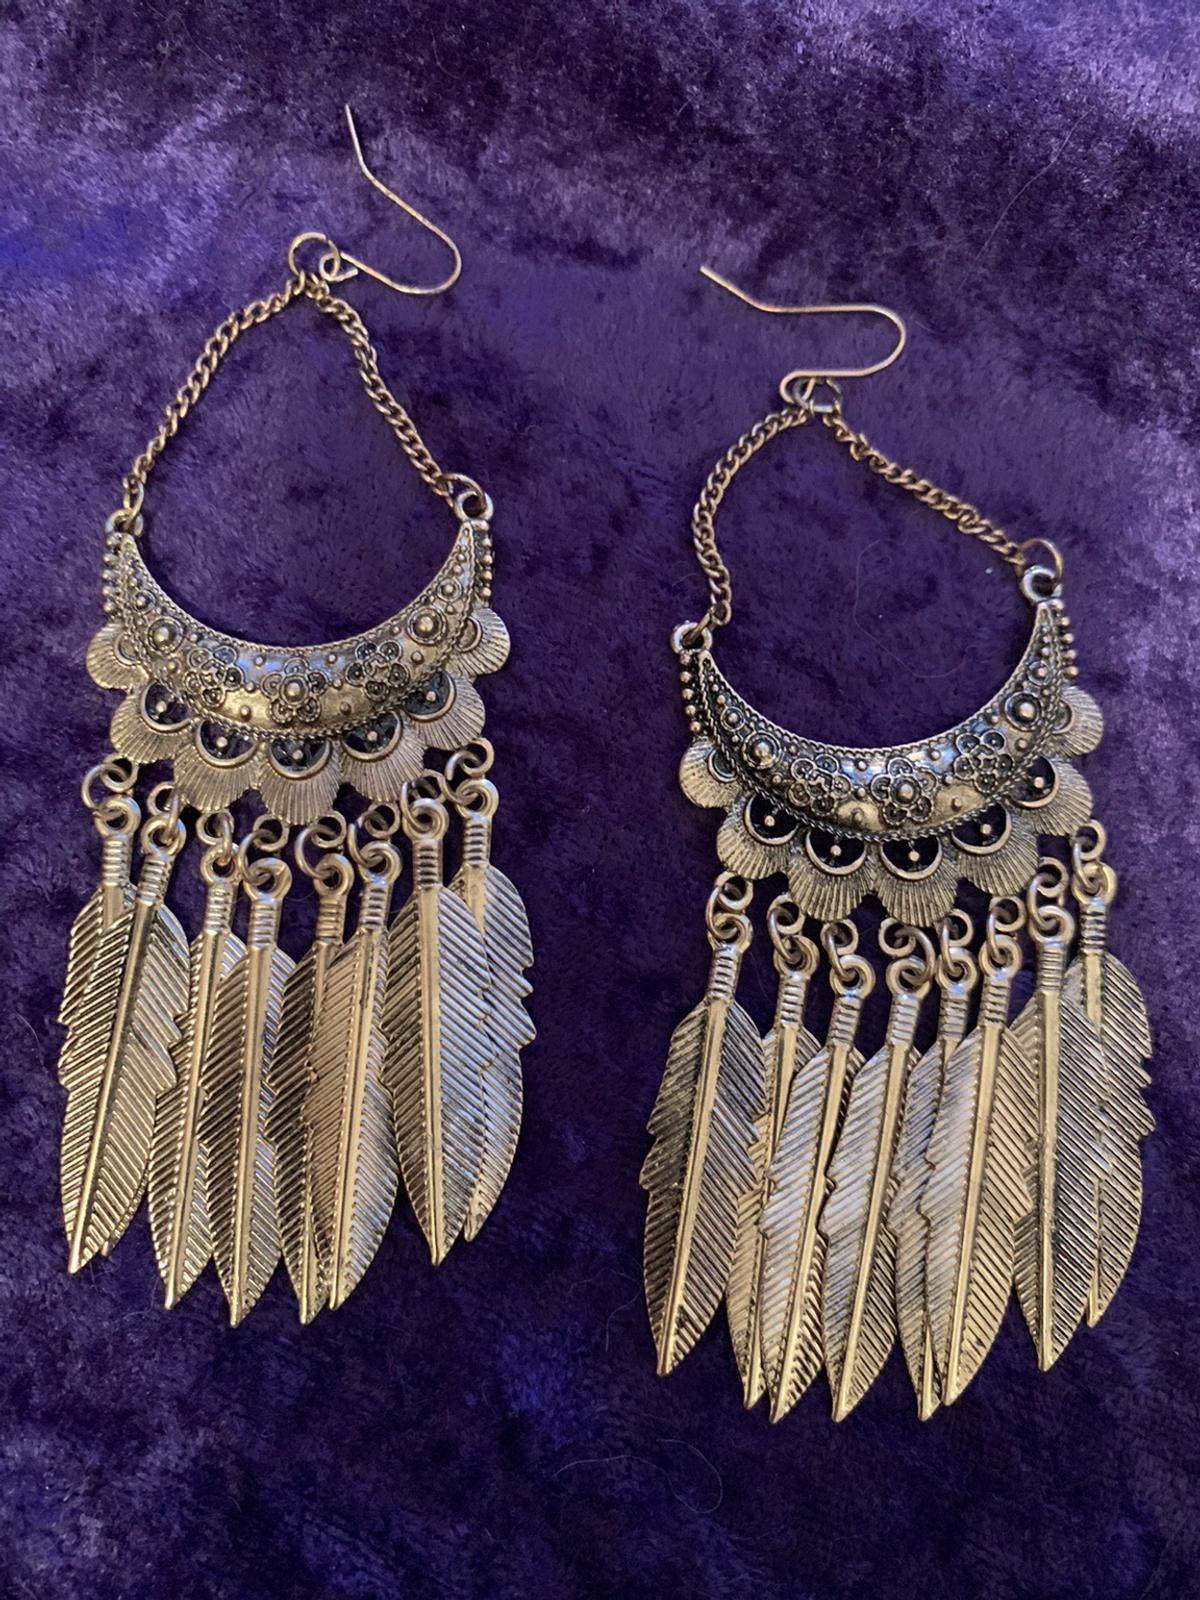 Stunning earrings Selling my collections to buy a house These are brand new 12cm drop Metal with flowy feathers See my other items Stored in jewellery box Ideal gift